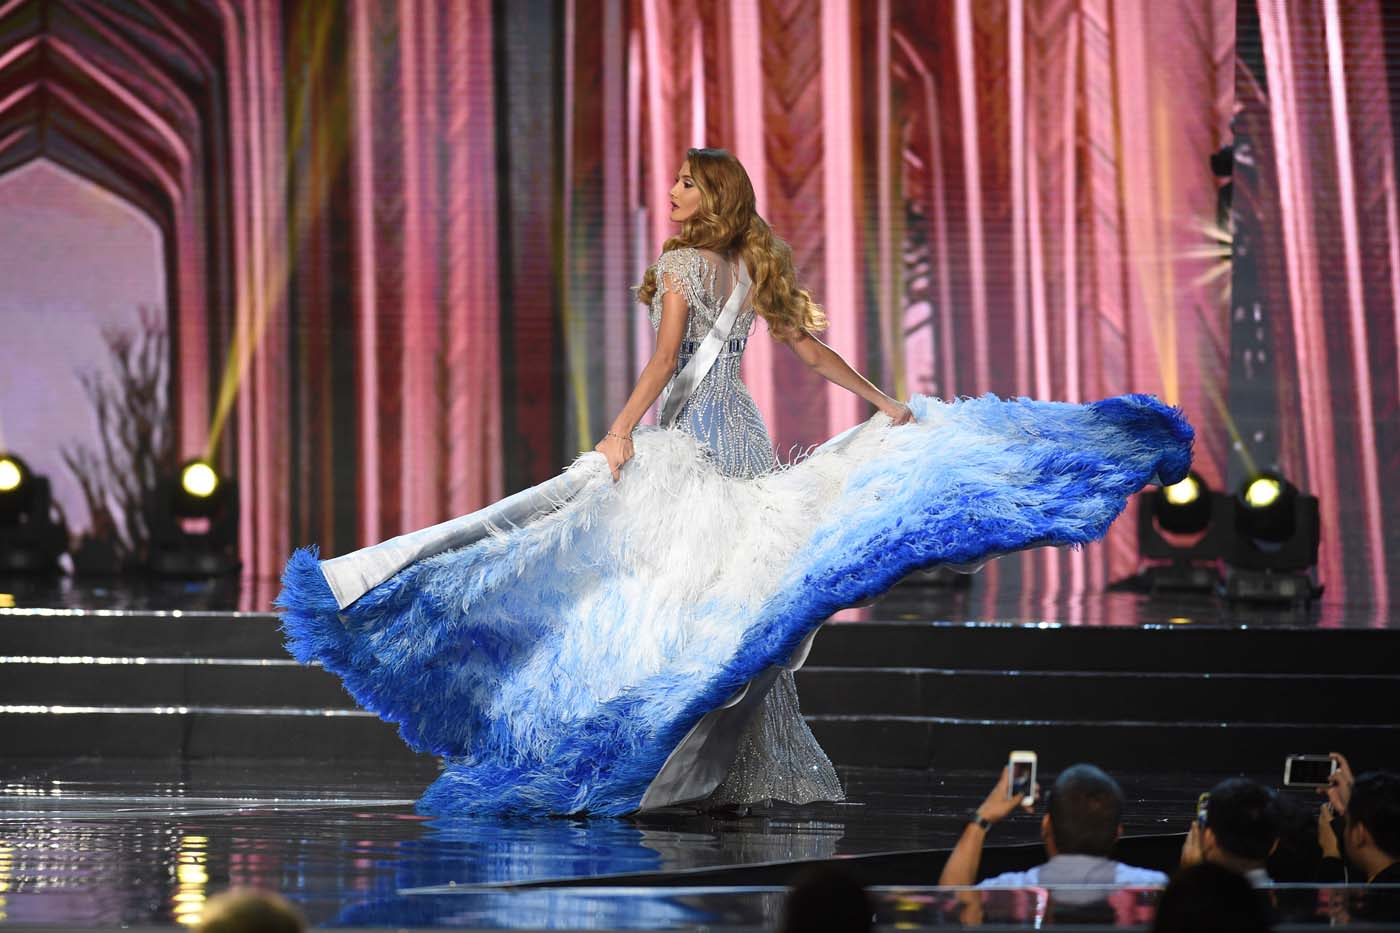 This photo taken on January 26, 2017 shows Miss Universe contestant Mariam Habach of Venezuela in her long gown during the preliminary competition of the Miss Universe pageant at the Mall of Asia arena in Manila. / AFP PHOTO / TED ALJIBE